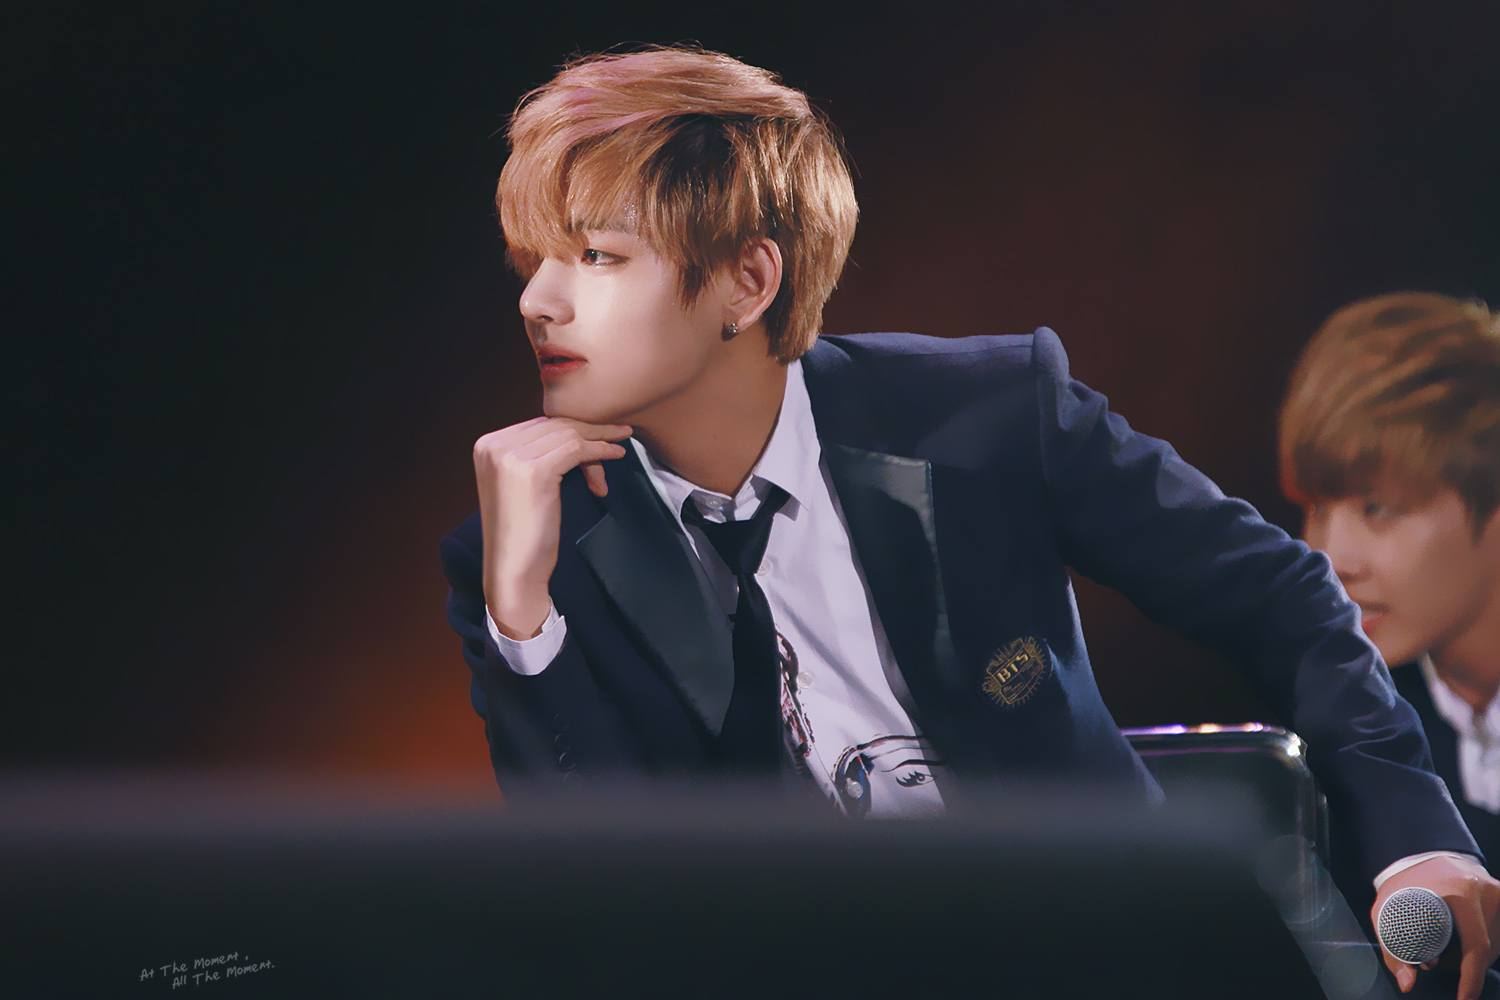 2 When He Looked Like A Twin From Ouran High School Host Club